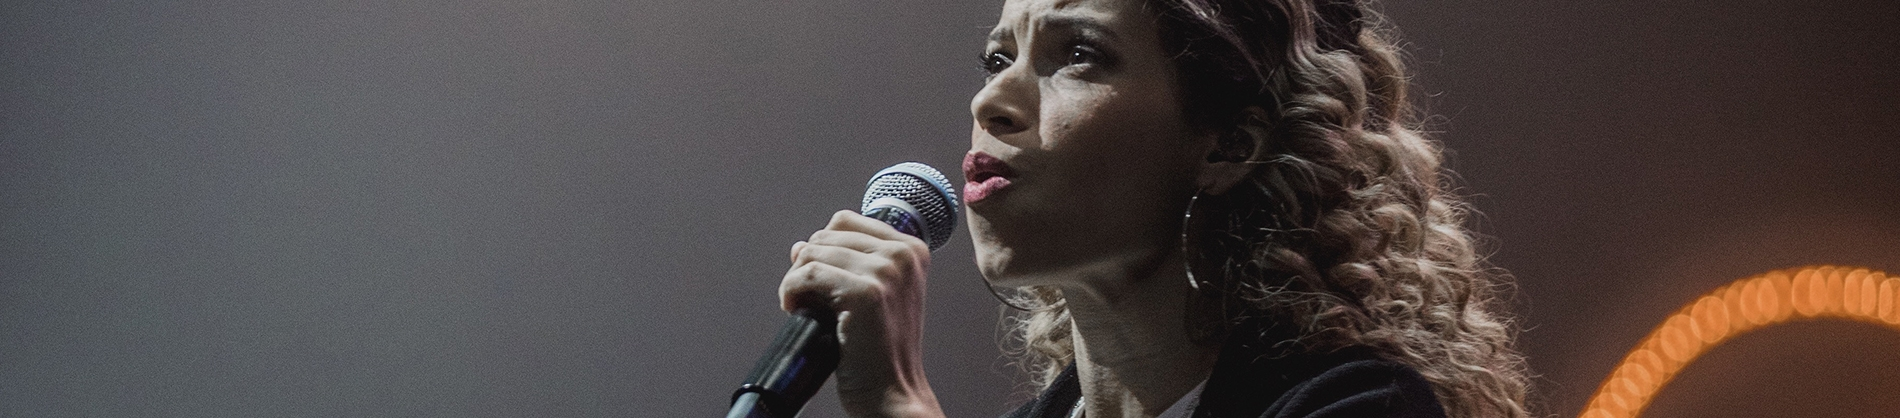 A women singing into a microphone